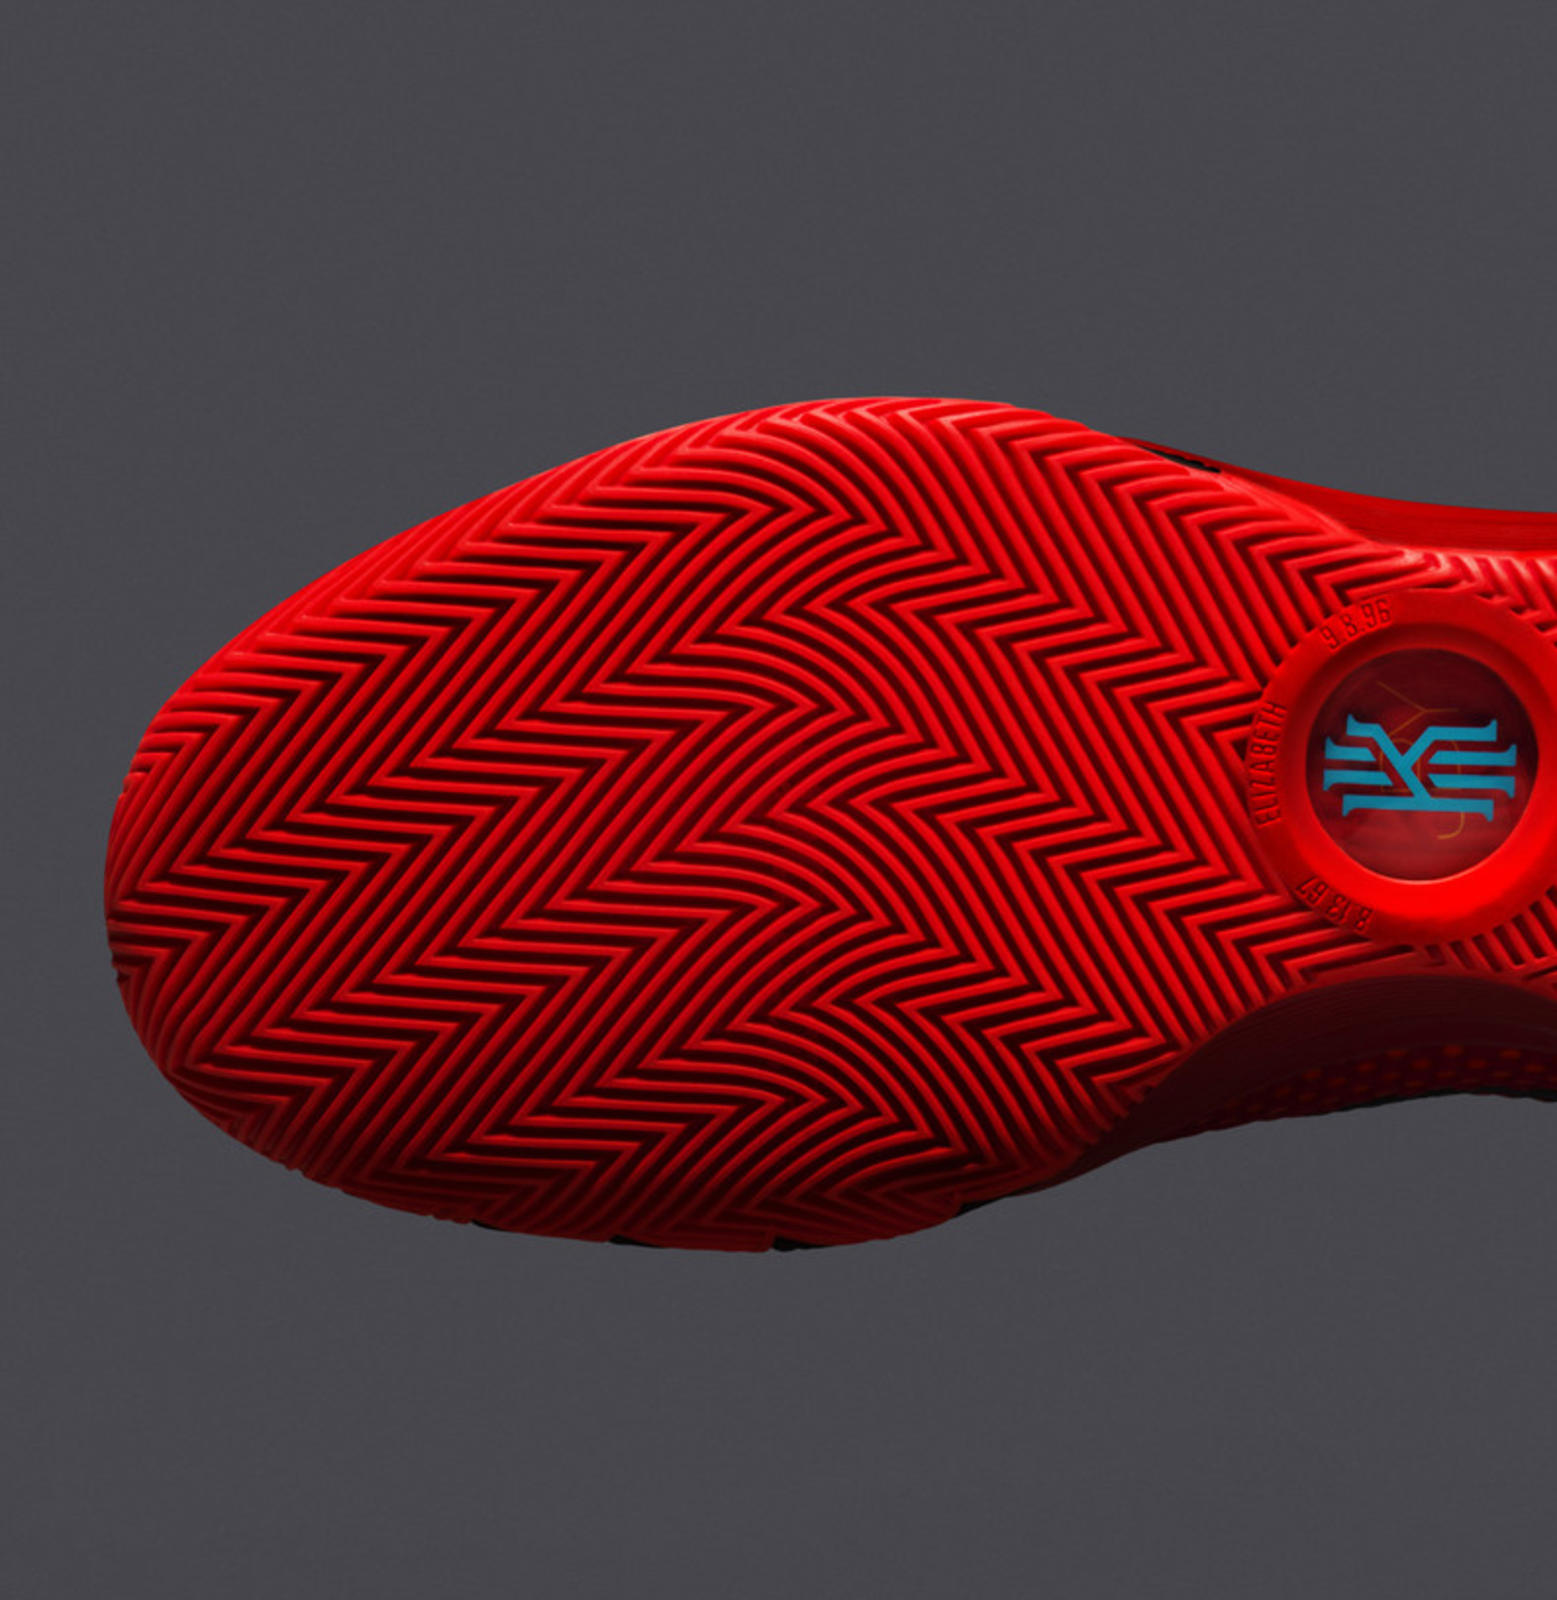 the latest 8819d 0edb4 Nike Welcomes Kyrie Irving to its Esteemed Signature Athlete Family - Nike  News